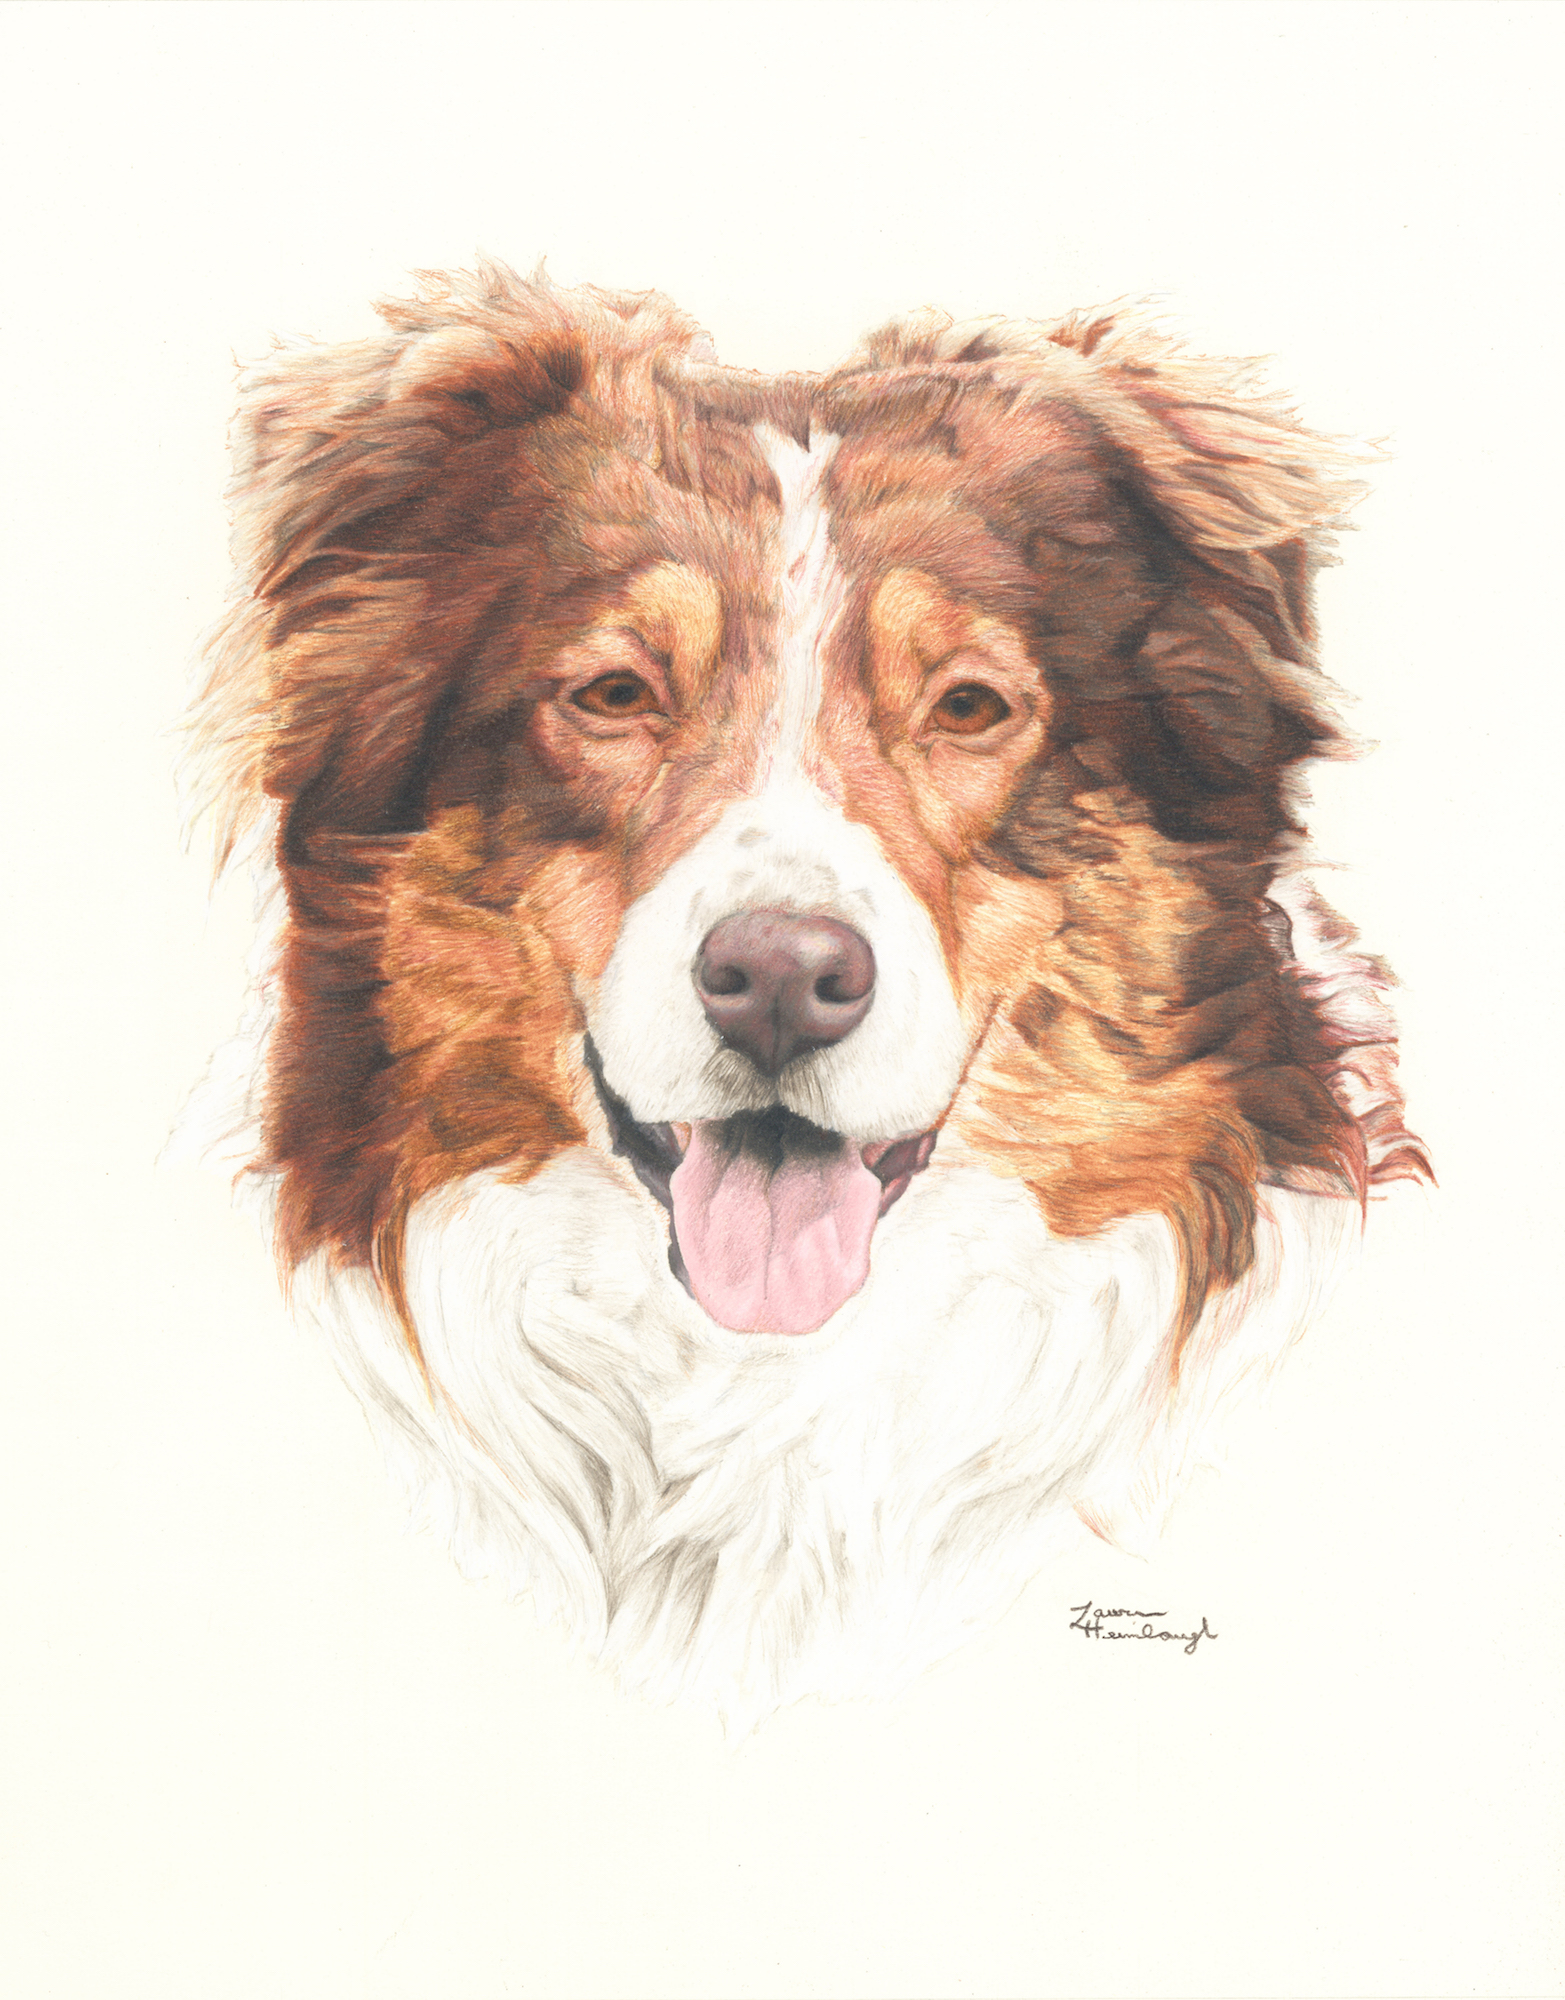 King the Australian Shepherd (2014)